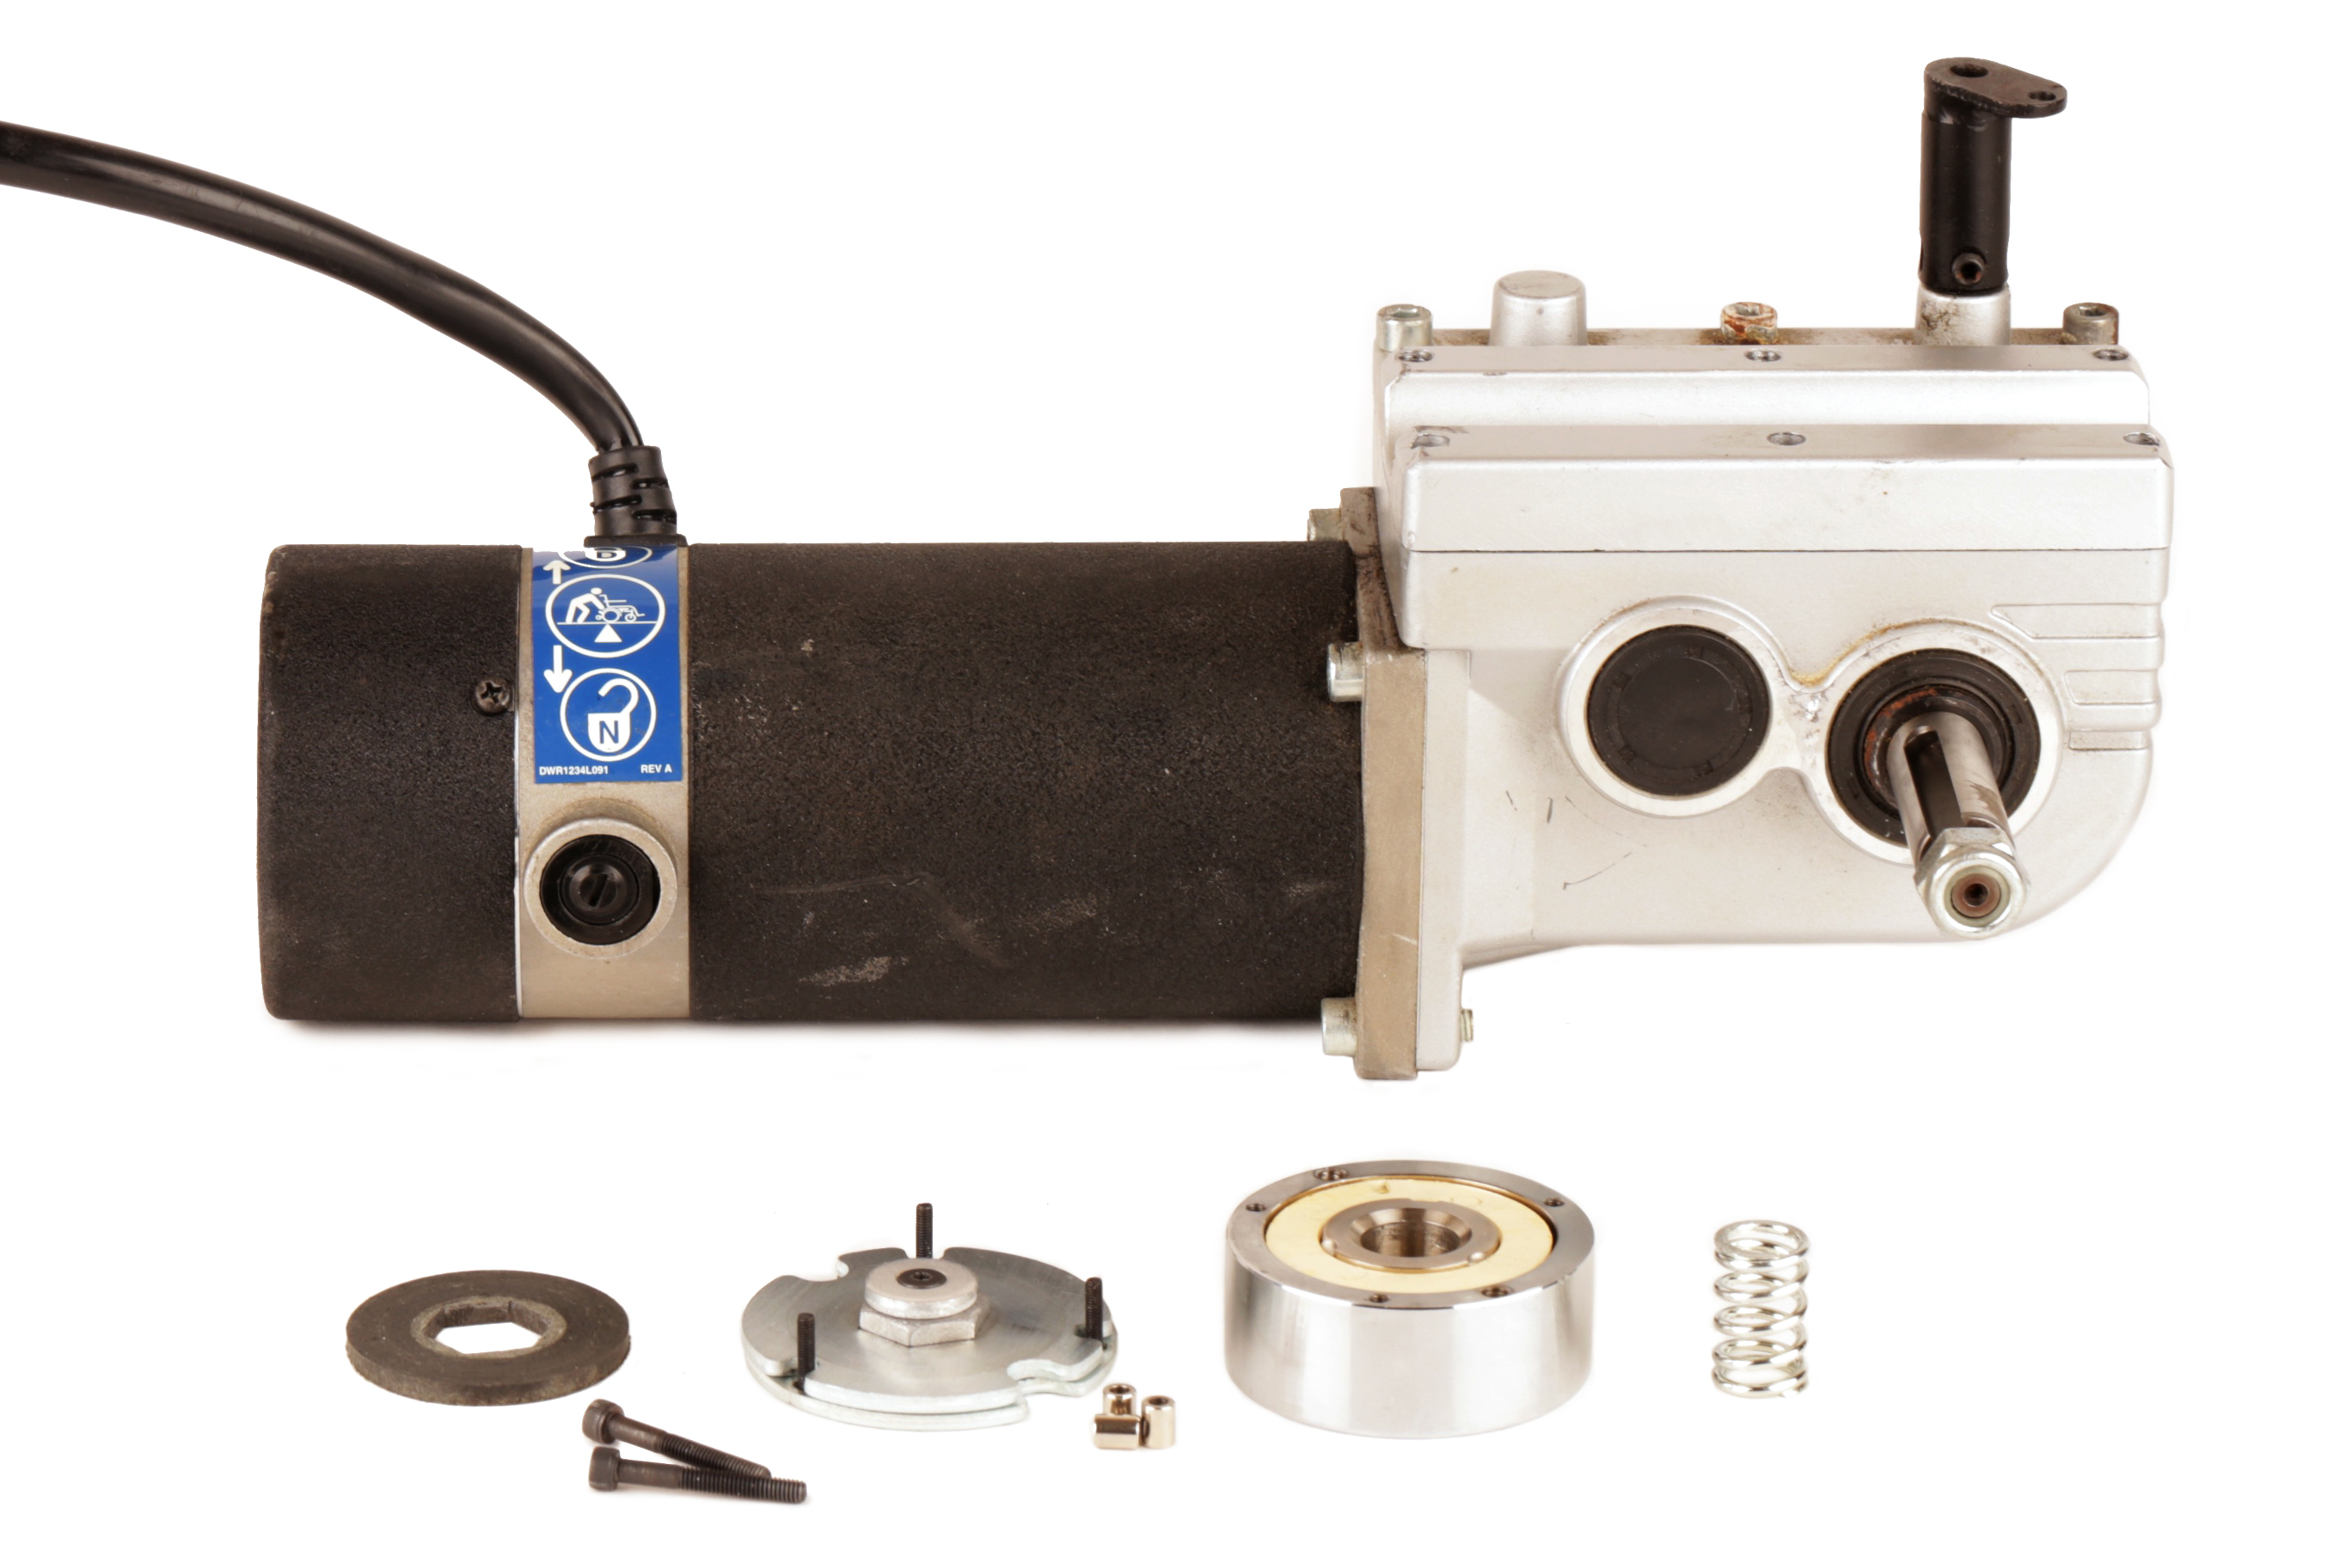 Picture of Remove a Wheelchair Motor Brake